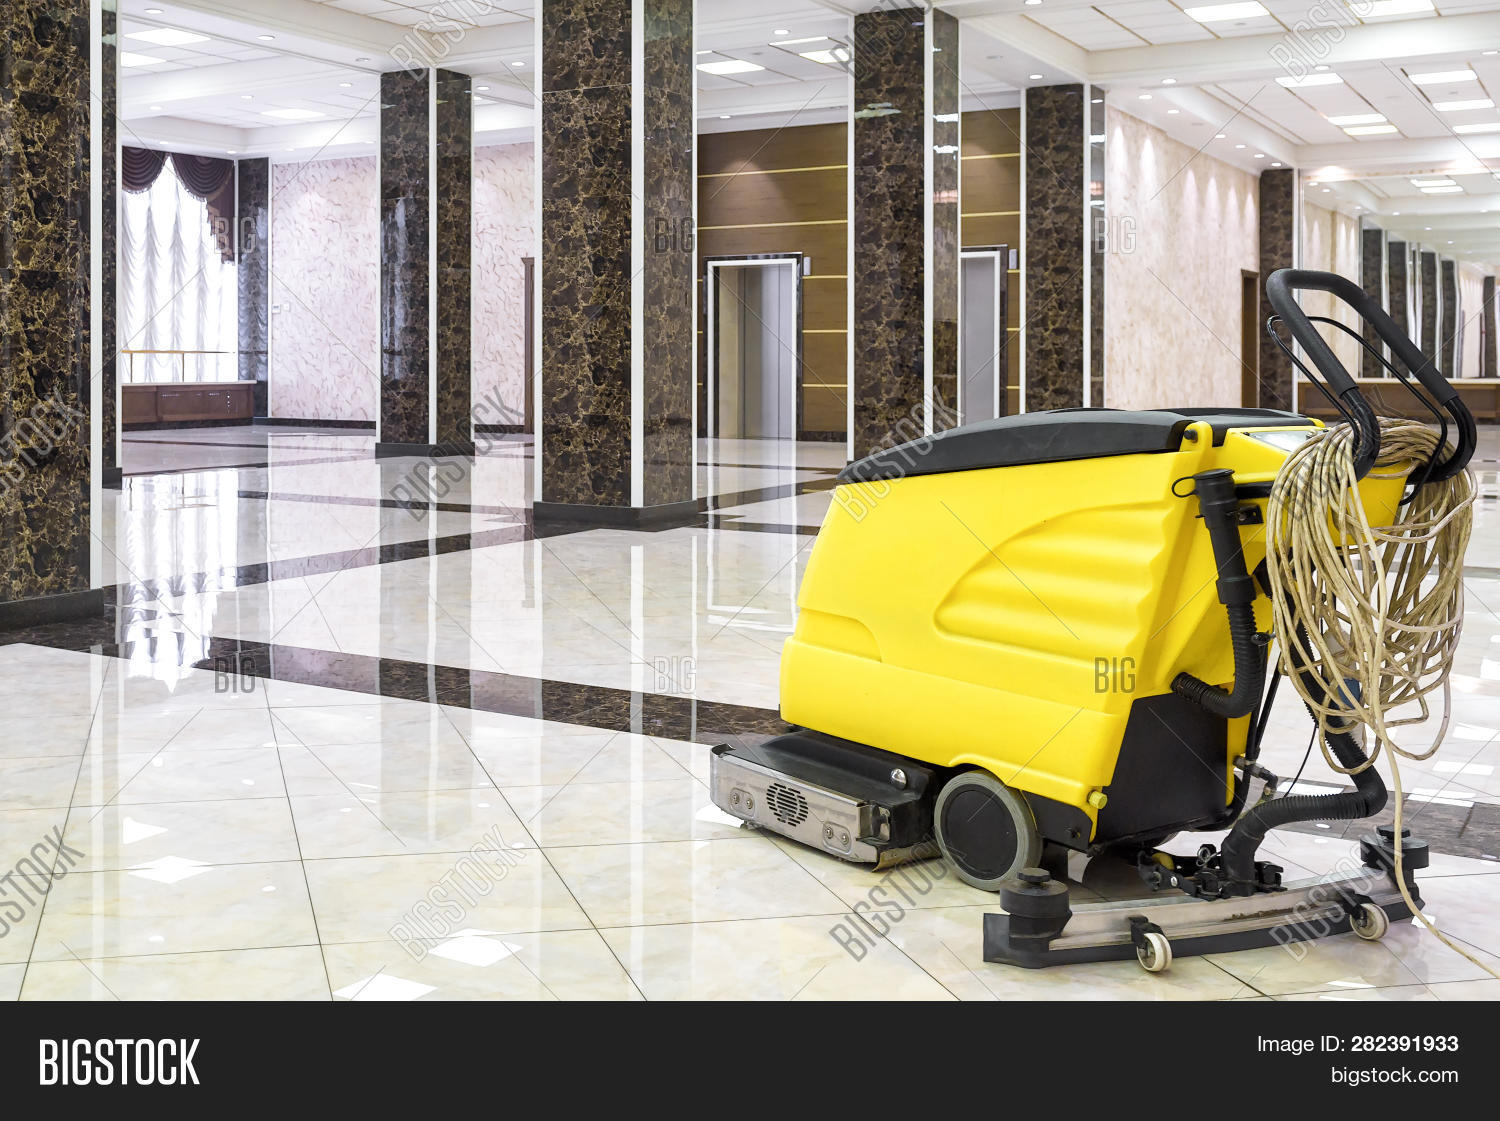 angle,appliance,background,buffing,building,business,ceramic,clean,cleaner,cleaning,commercial,company,corporate,corridor,electric,empty,equipment,facility,floor,hall,hallway,hotel,indoor,industrial,interior,job,lobby,luxury,machine,maintenance,marble,modern,nobody,office,perspective,professional,room,school,scrubber,scrubbing,service,shiny,space,technology,tidy,tile,vacuum,washing,working,yellow